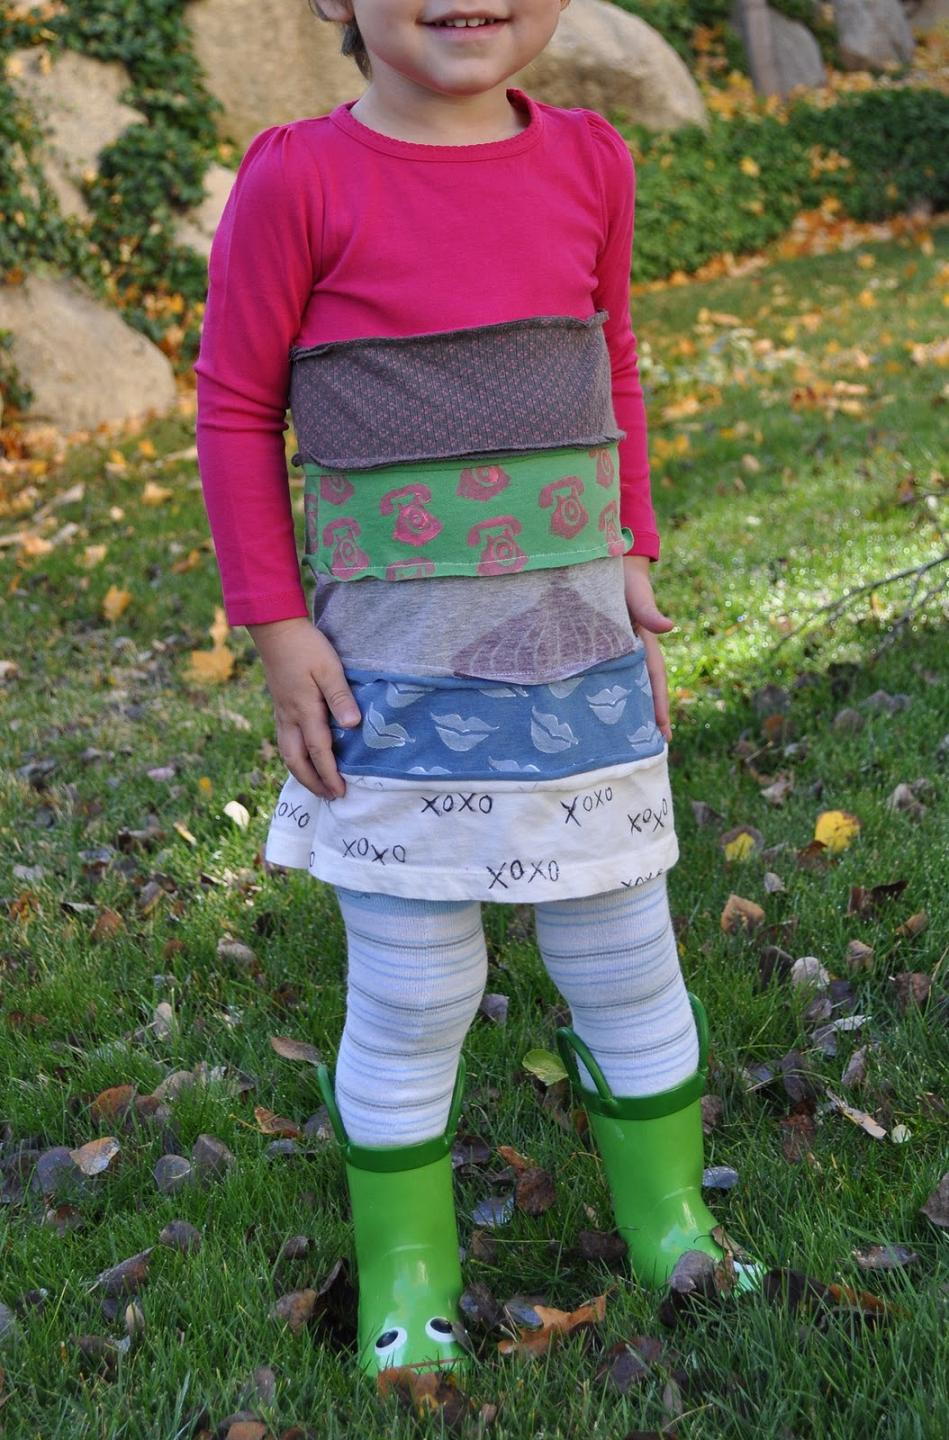 50 Ways To Reuse Your Old T Shirts Part 2